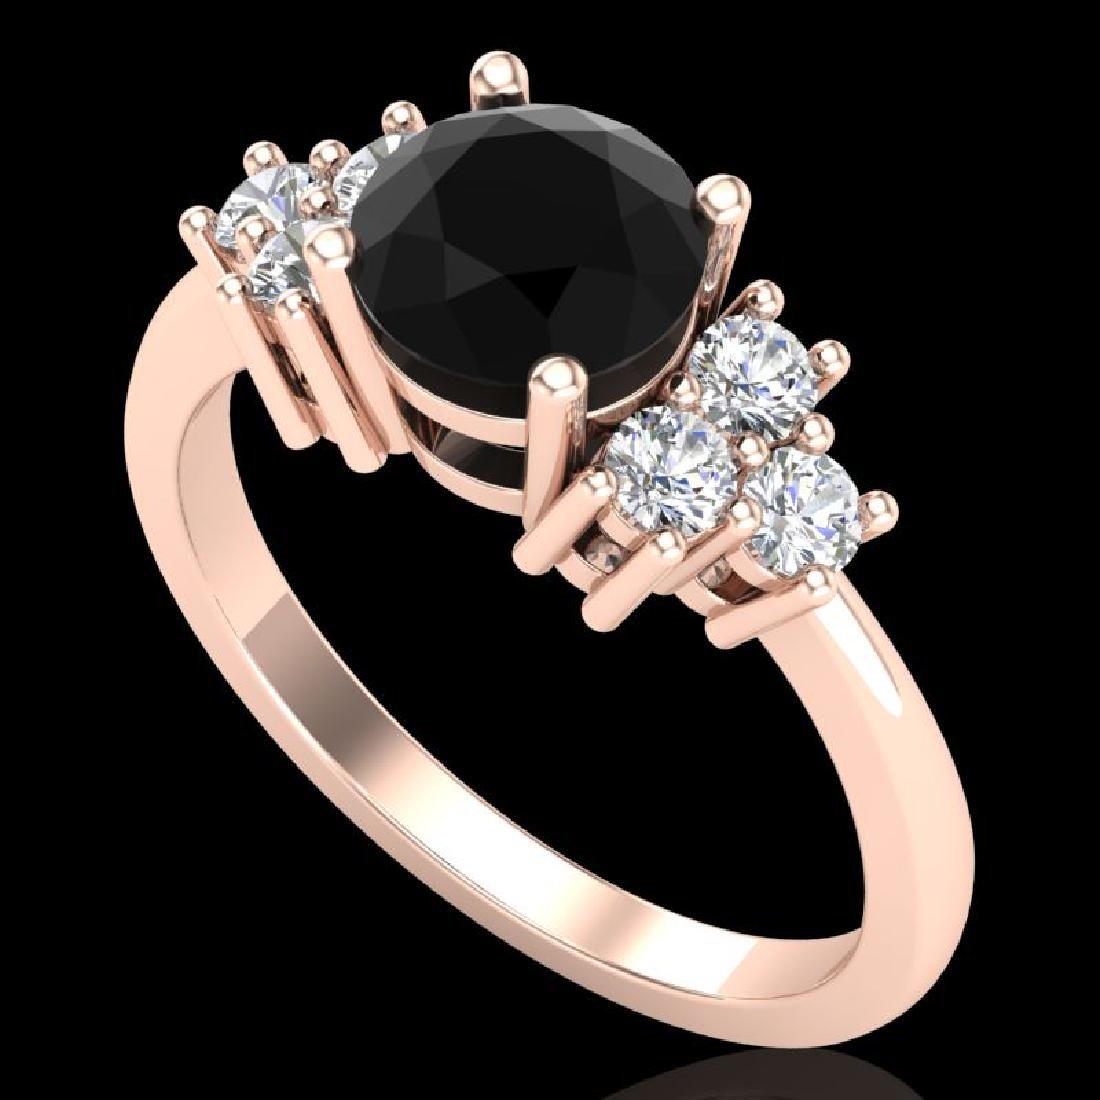 1.5 CTW Fancy Black Diamond Solitaire Engagement